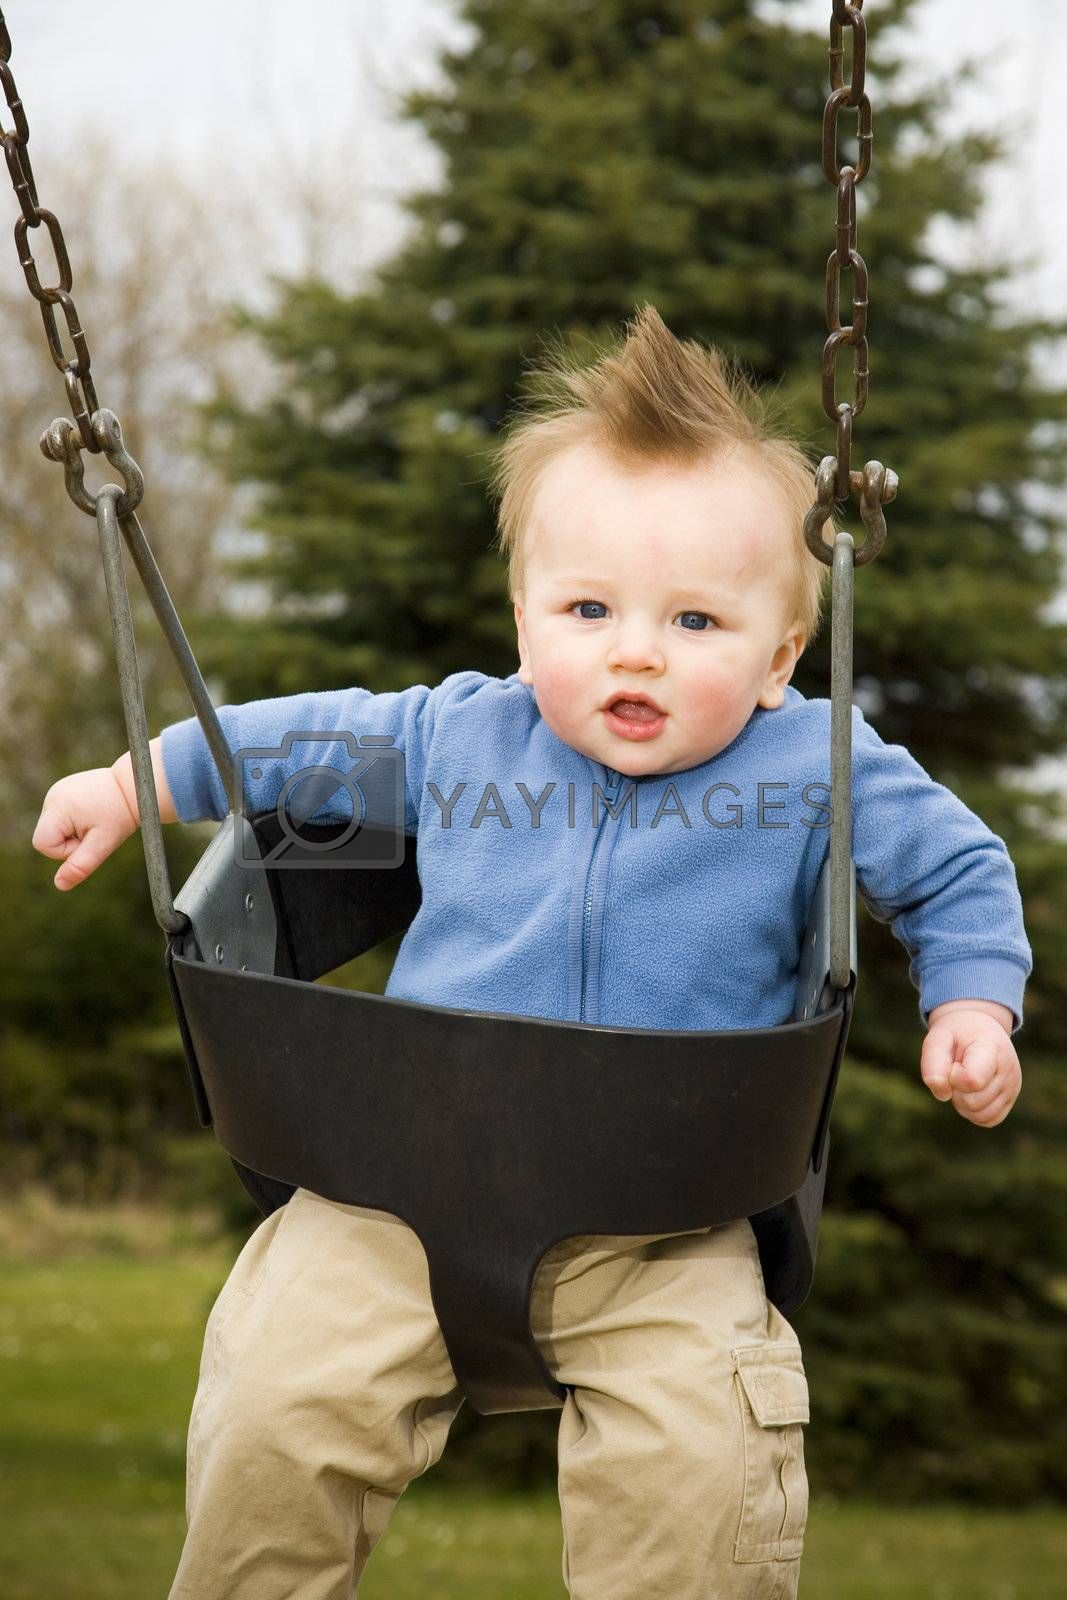 A portrait of a happy boy on a swing in a playground.